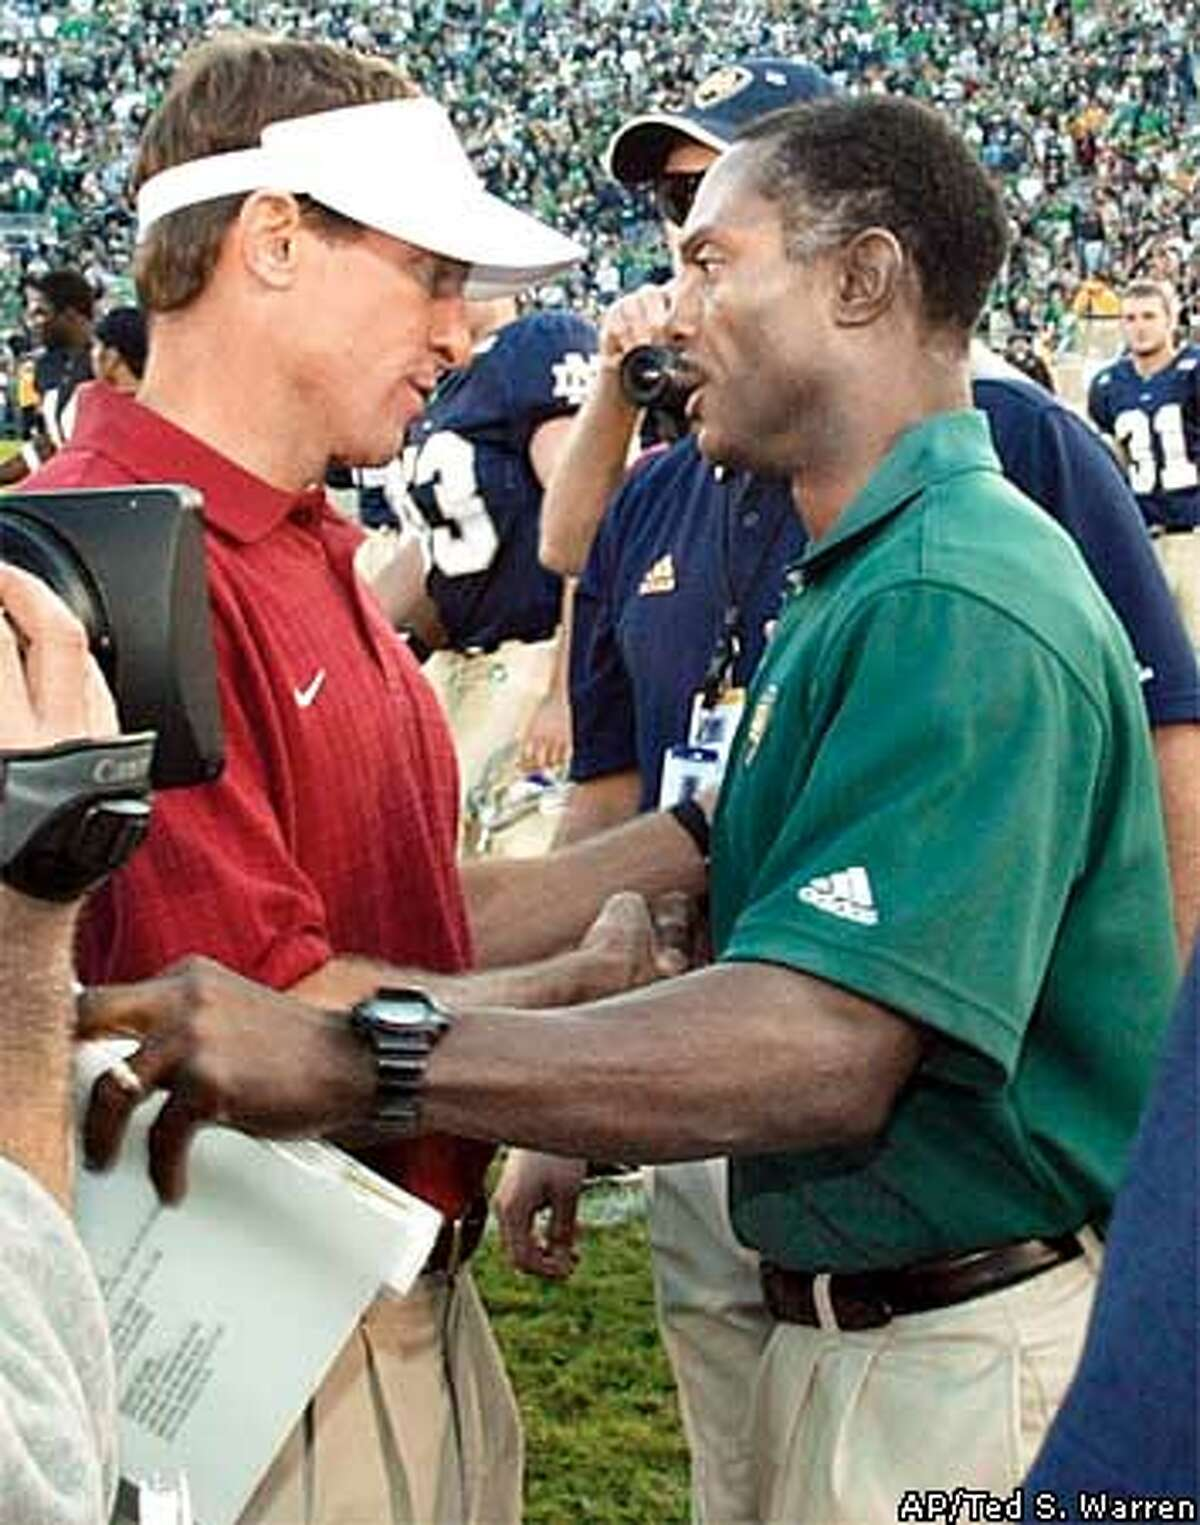 Notre Dame head coach Tyrone Willingham, right, greets Stanford head coach Buddy Teevens, left, after Notre Dame beat Stanford, 31-7, at Notre Dame Stadium, Saturday, Oct. 5, 2002, in South Bend, Ind. (AP Photo/Ted S. Warren) ALSO RAN 11/25/02